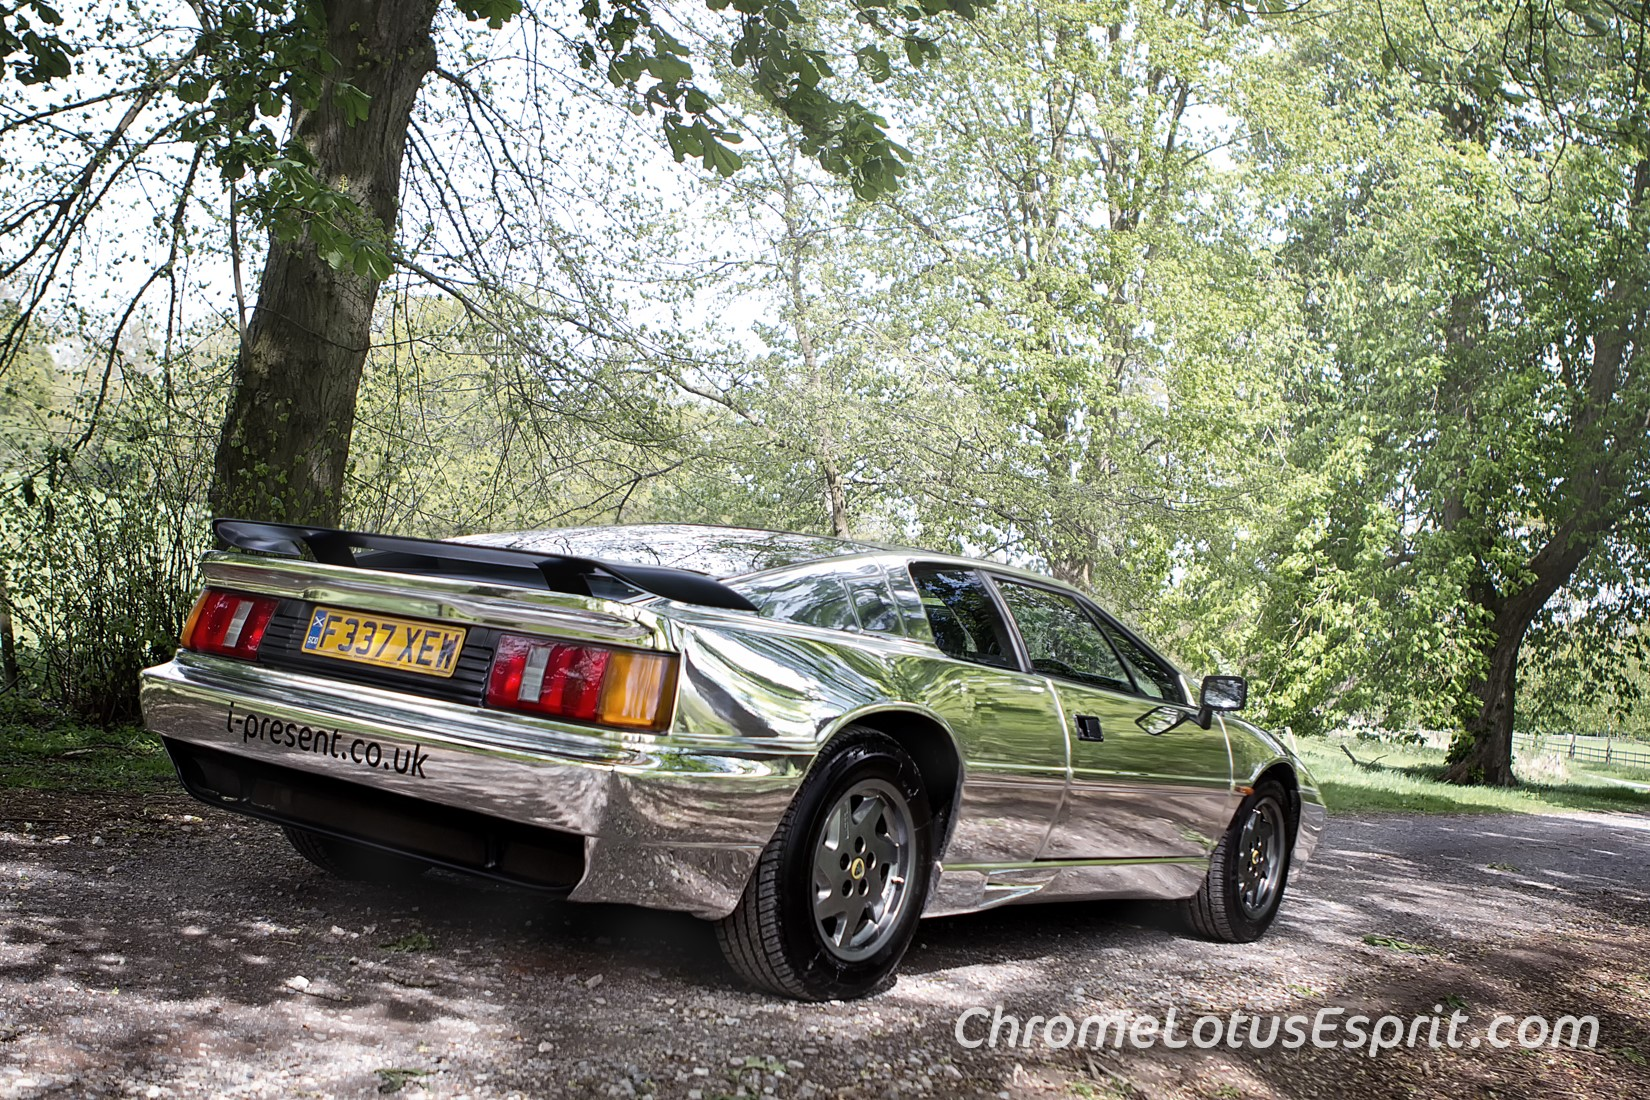 Chrome-Lotus-Esprit-for-sale-06